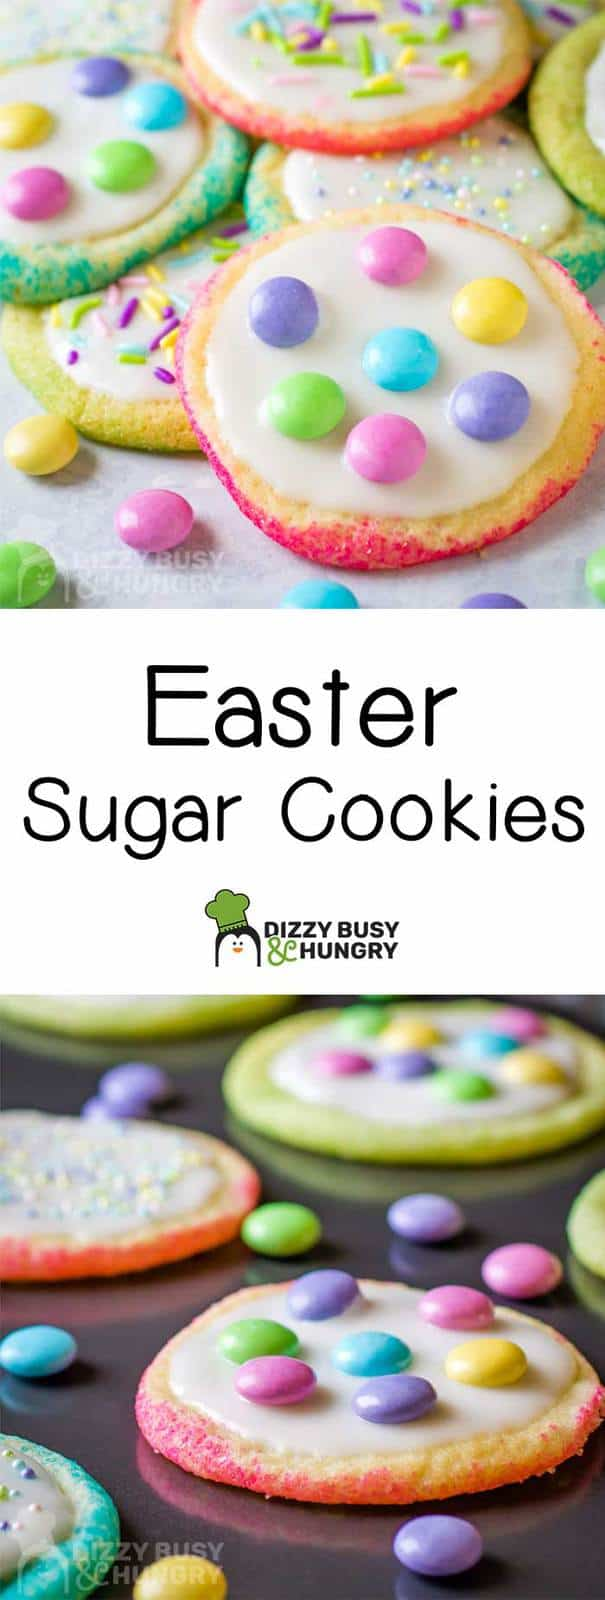 long pin for Easter sugar cookies with 2 photos and text